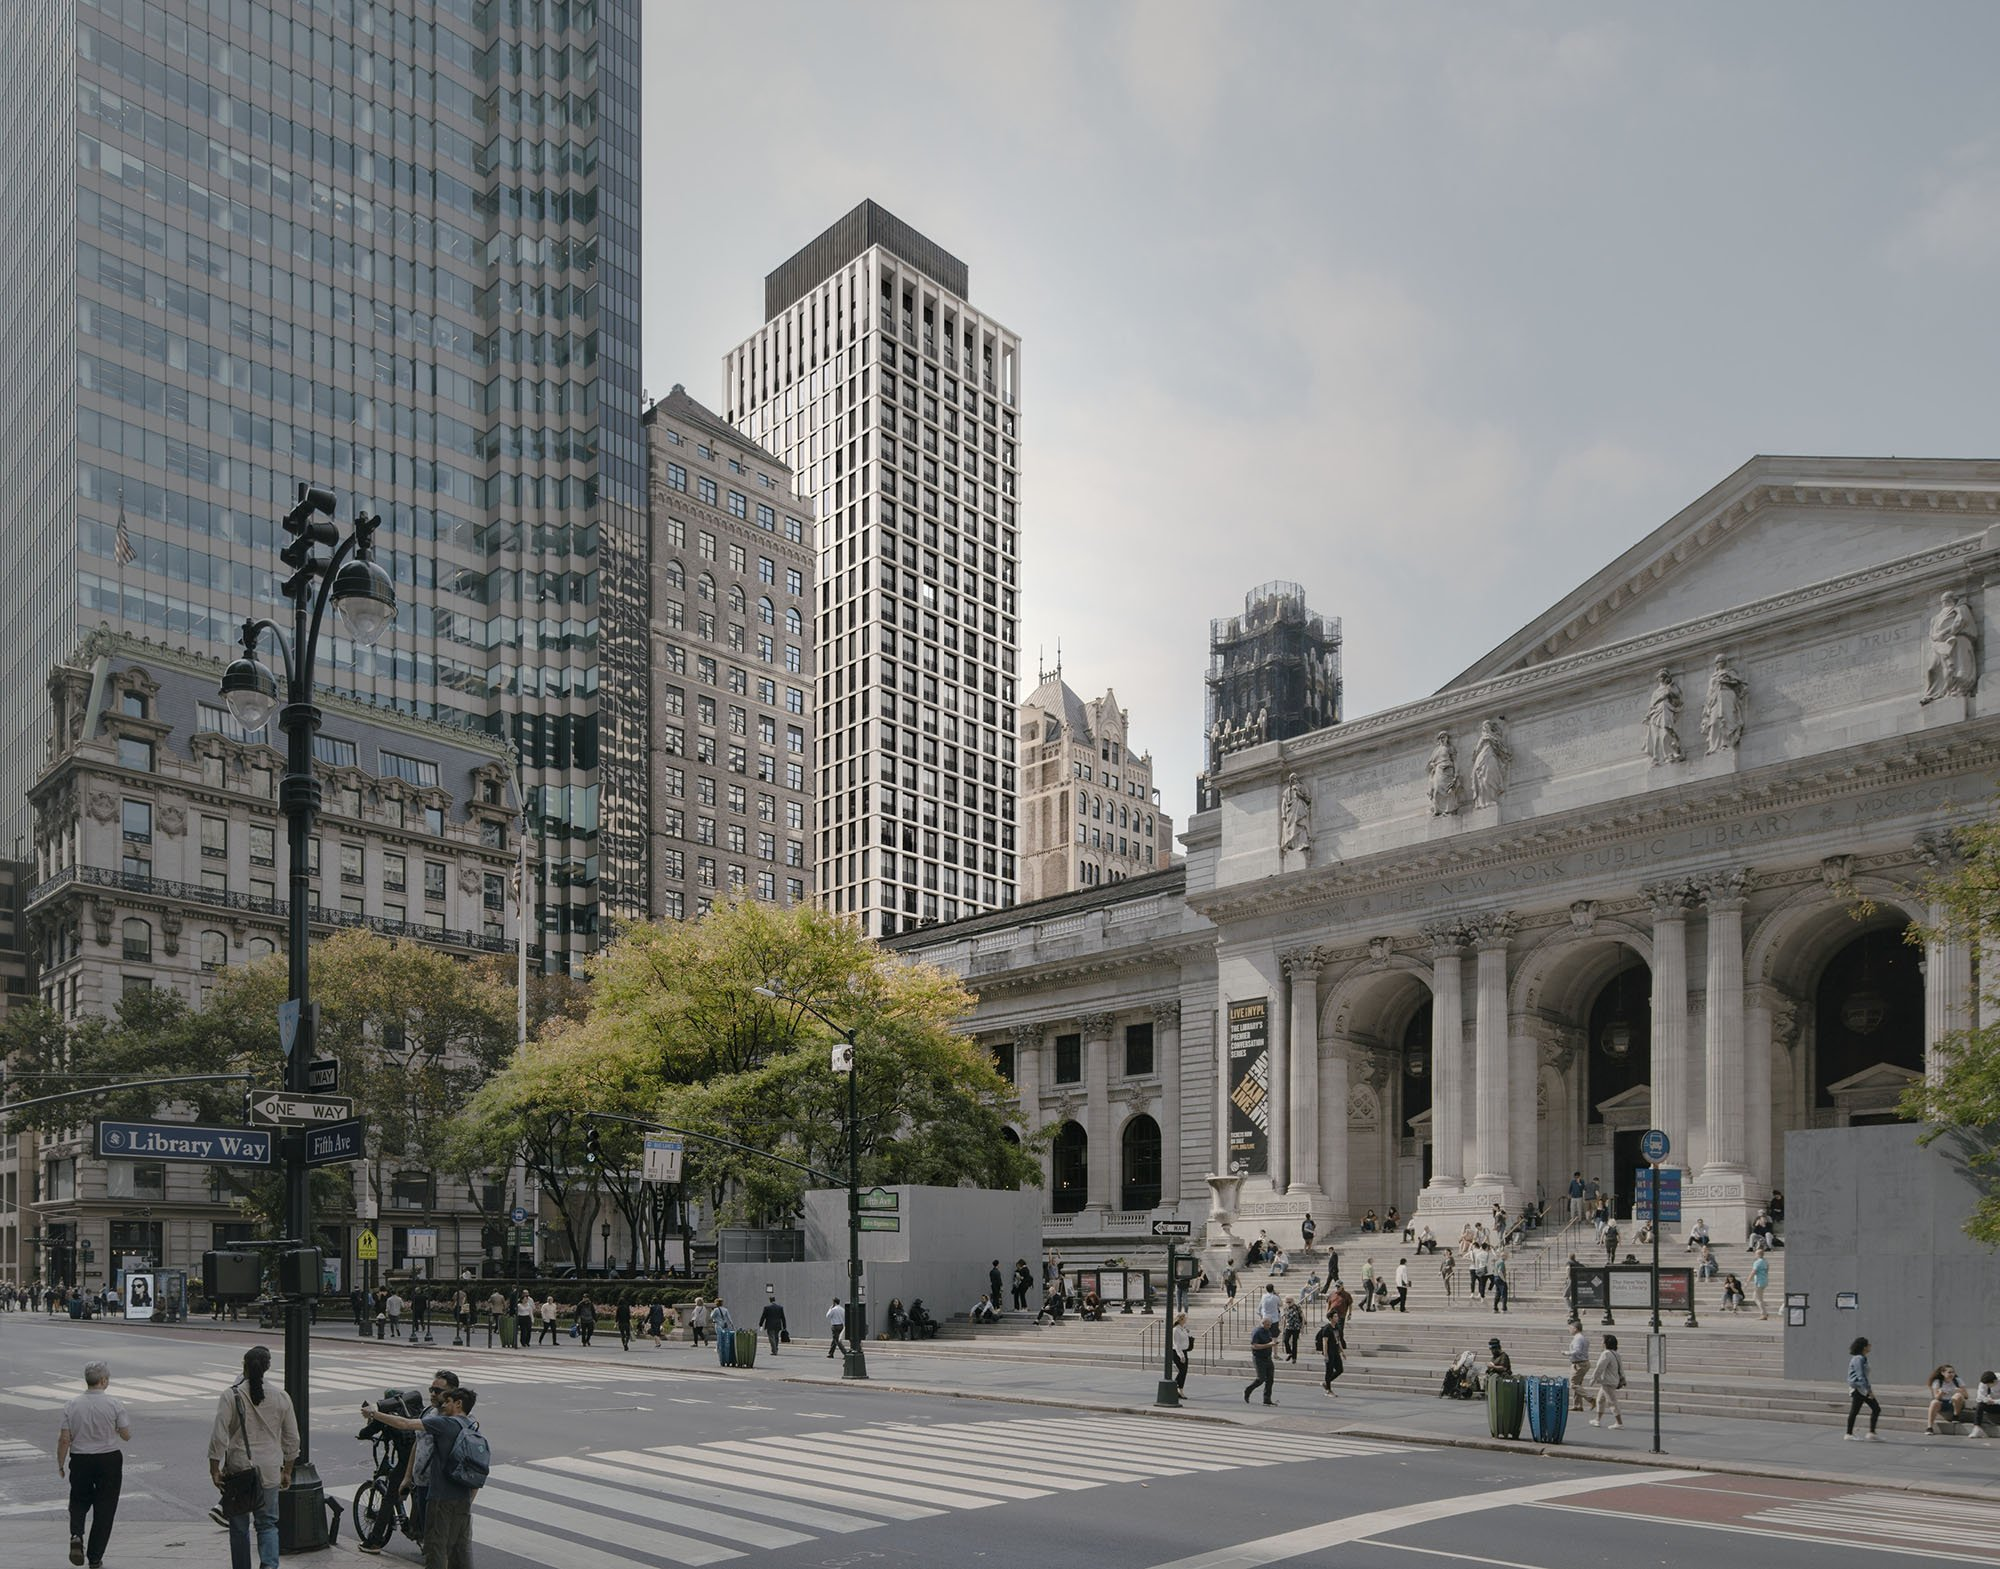 © Simon Menges View from in front of the New York Public Library